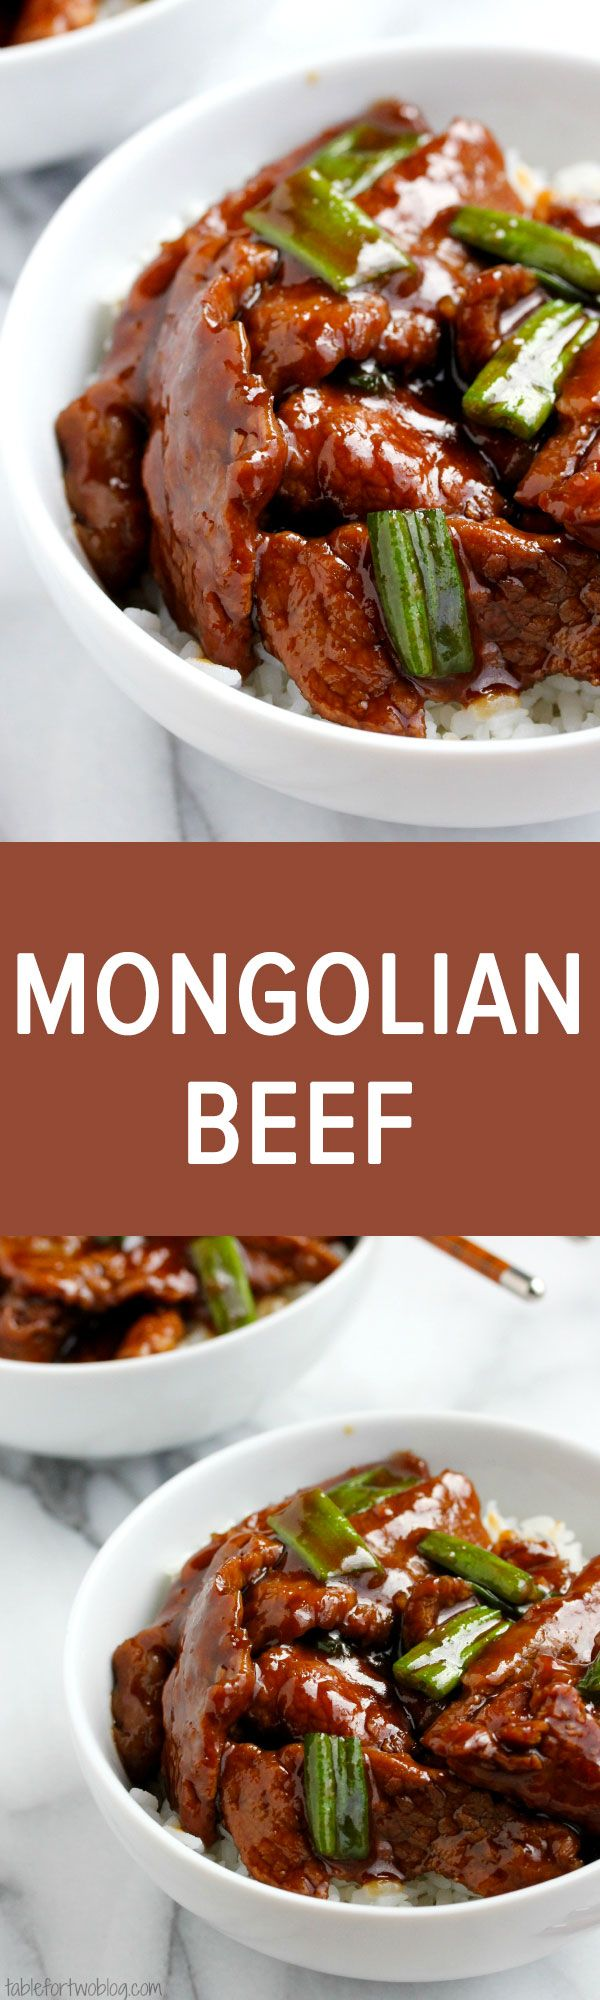 122 best food beef recipes images on pinterest cooking recipes mongolian beef is easy to make at home forumfinder Images